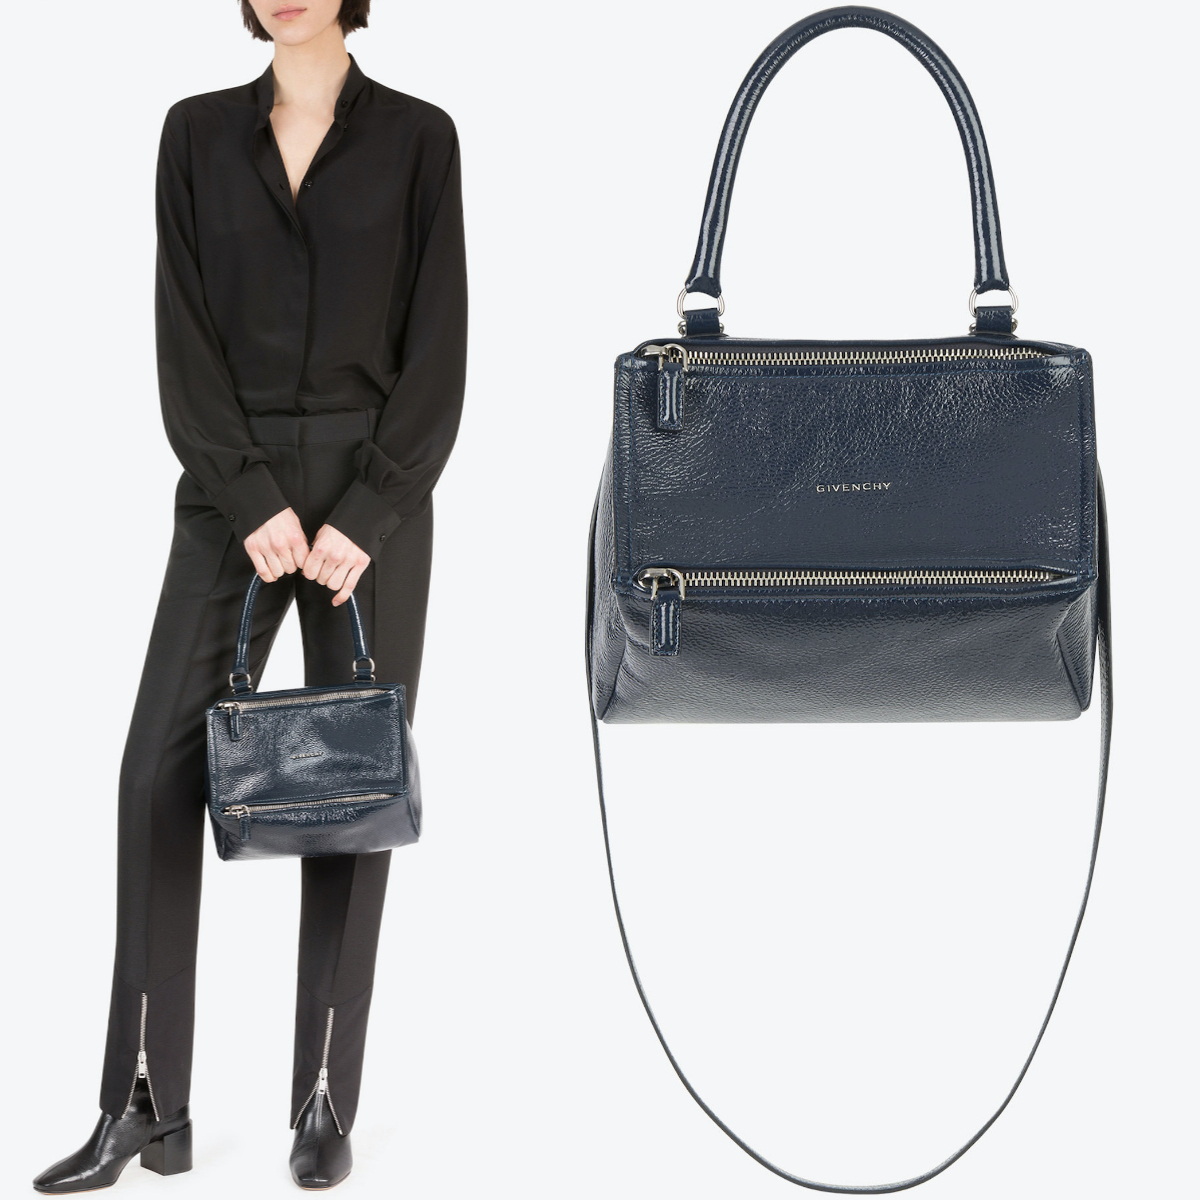 18-19AW G400 SMALL PANDORA BAG IN PATENT LEATHER (GIVENCHY/ハンドバッグ) BB500AB05M-402